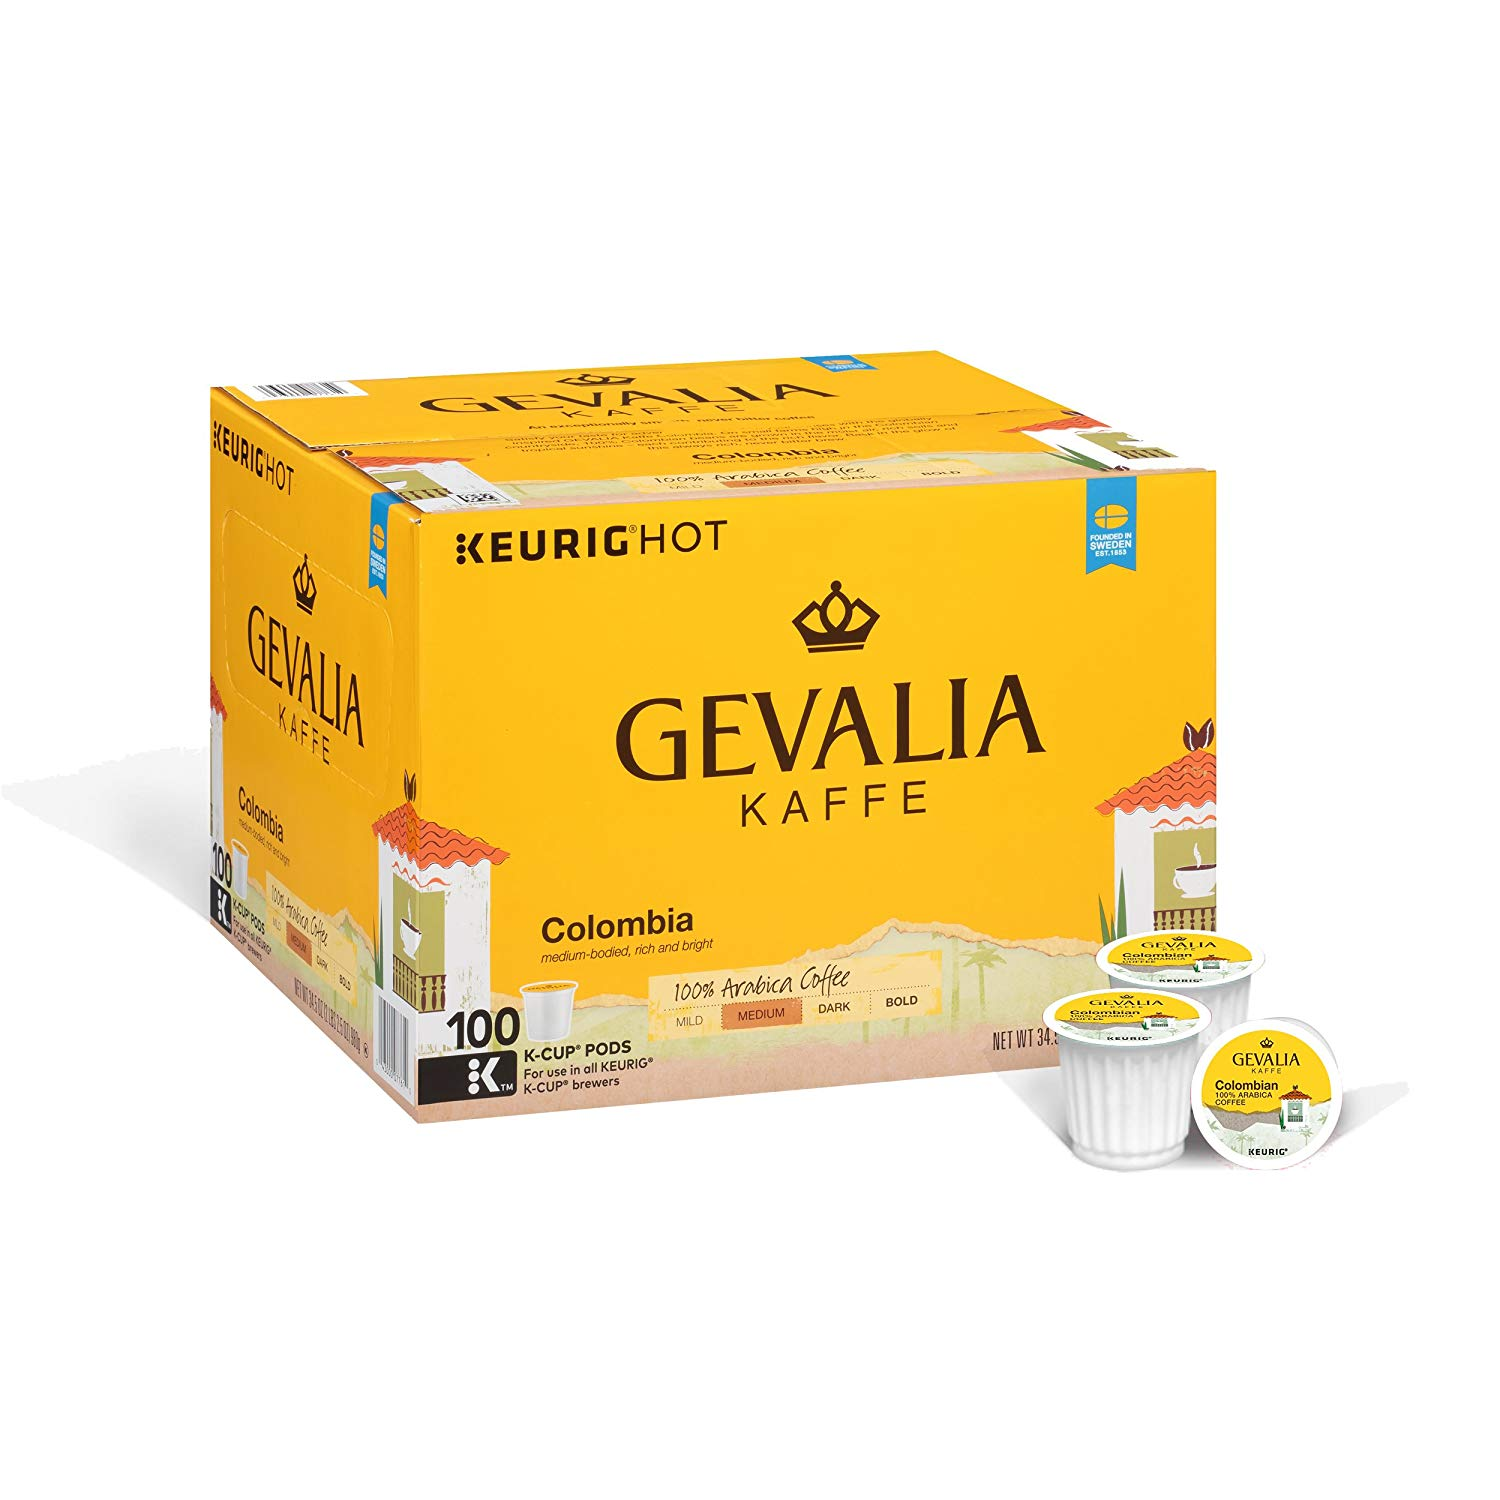 Gevalia Colombia Coffee, K-CUP Pods, 100 Count Only $24.21